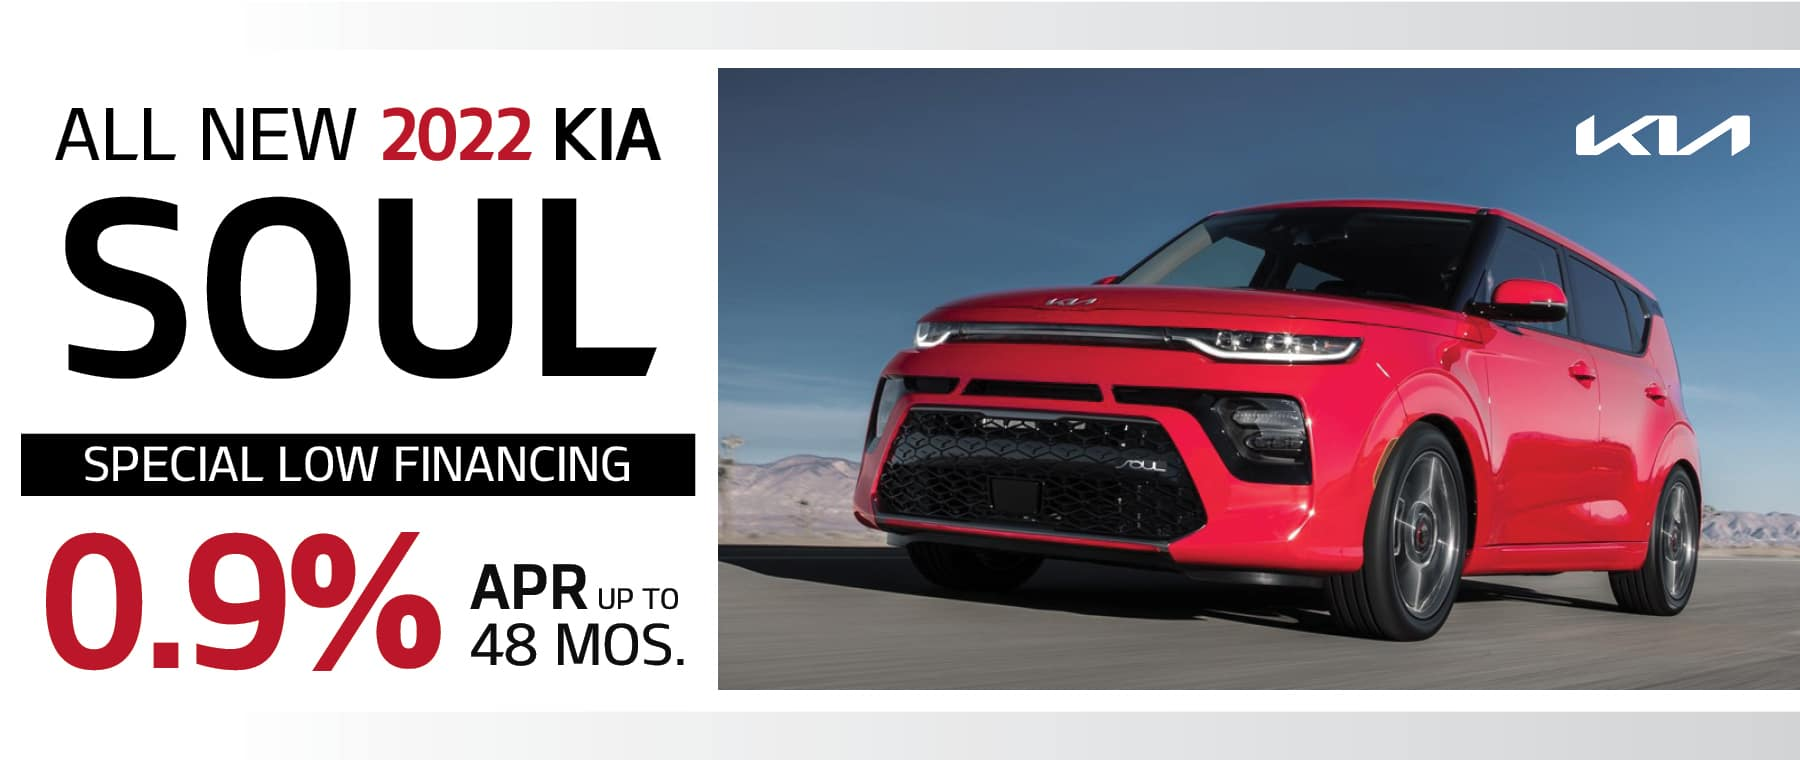 0.9% APR for 48 Months on the 2022 Kia Soul